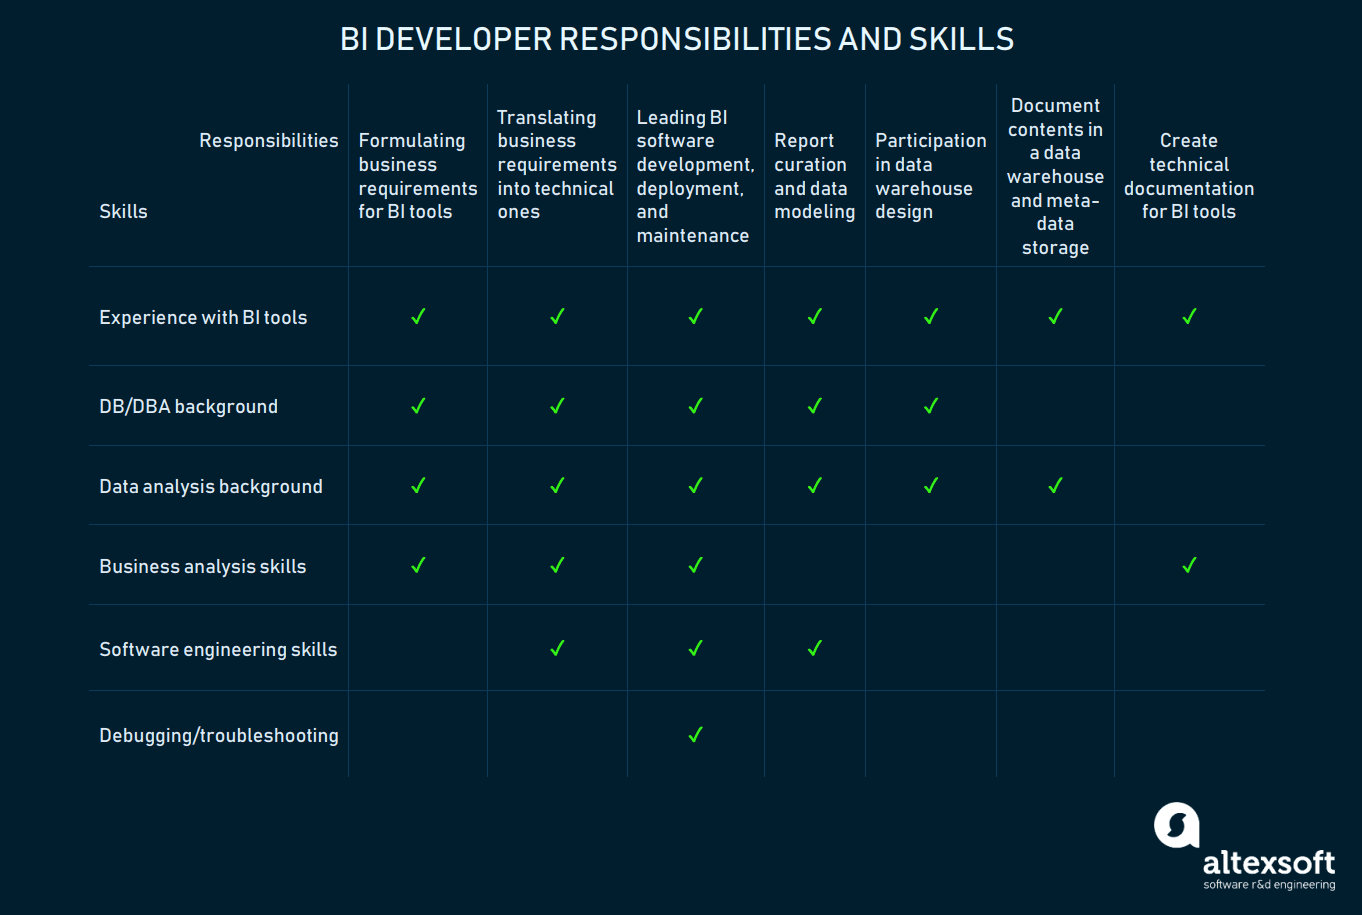 BI developer responsibilities and skills